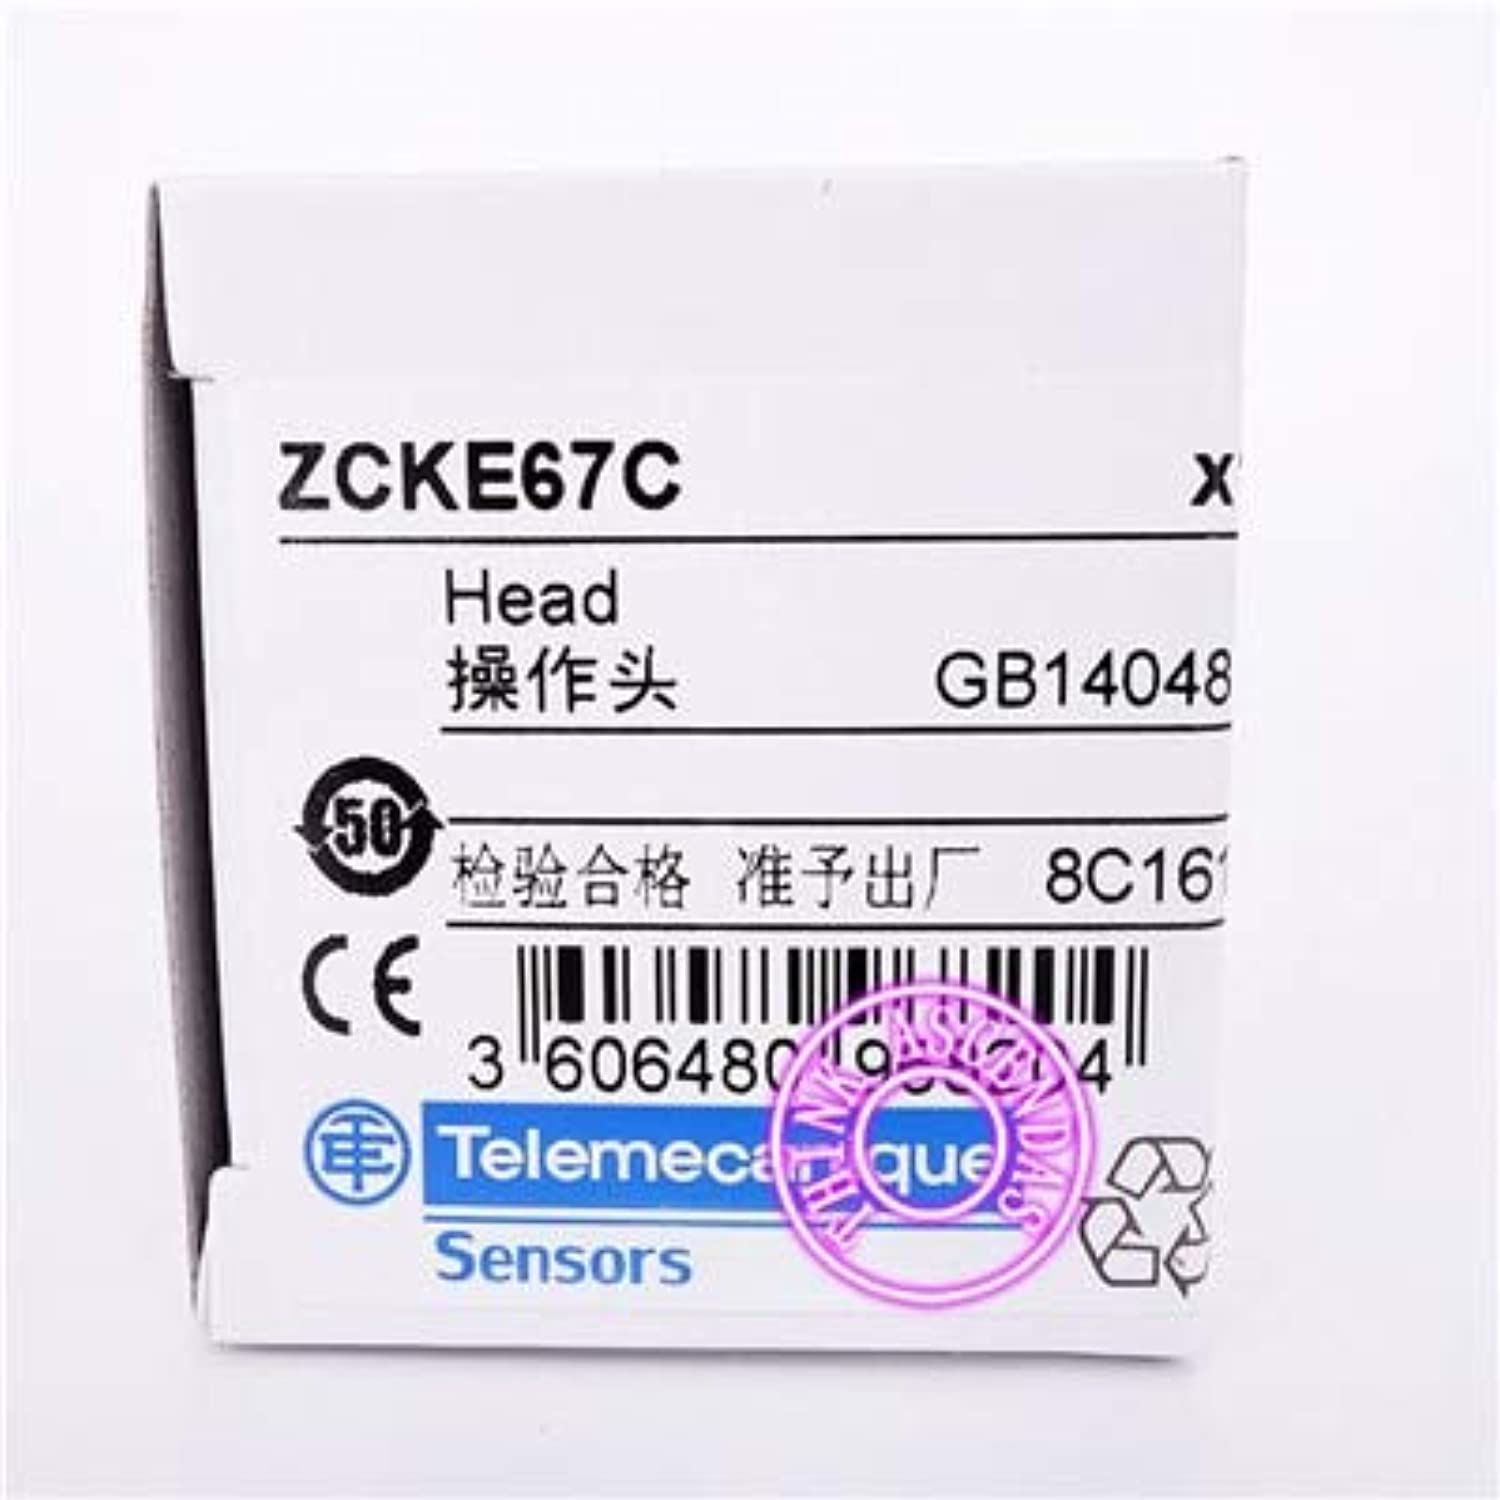 Limit Switch Operating Head Original New ZCKE65C ZCKE65C   ZCKE67C ZCKE67C   ZCKE629C ZCKE629C  (color  ZCKE67C)